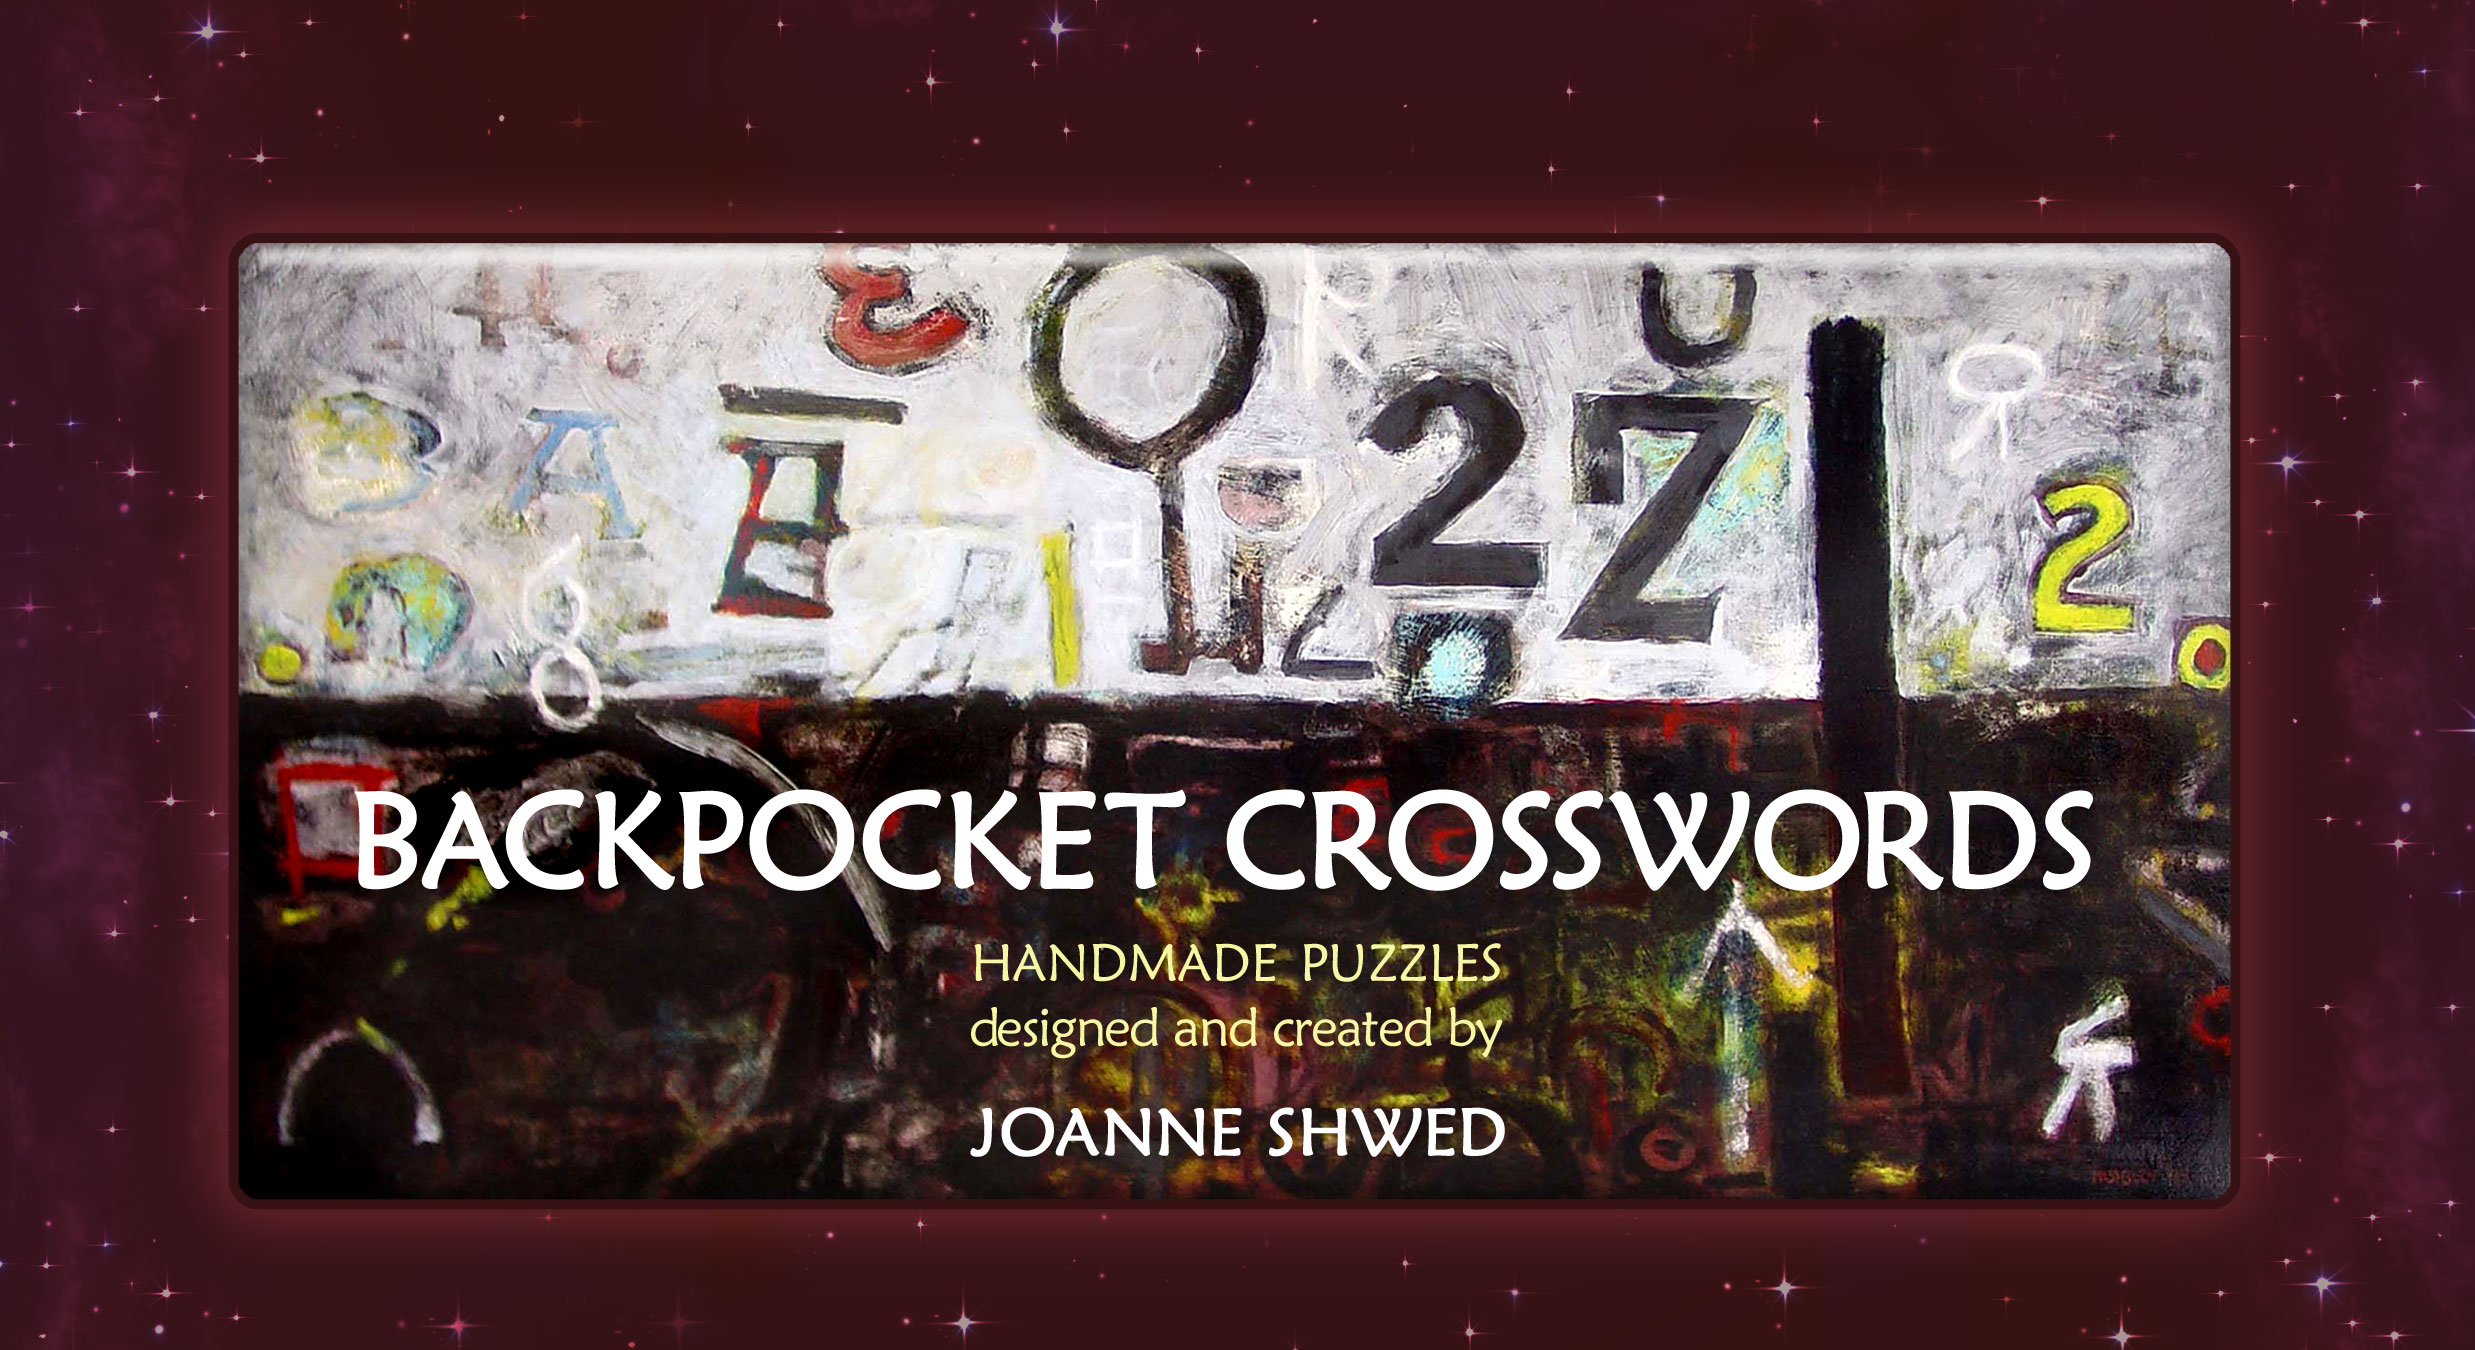 Backpocket Crosswords: Handmade Puzzles